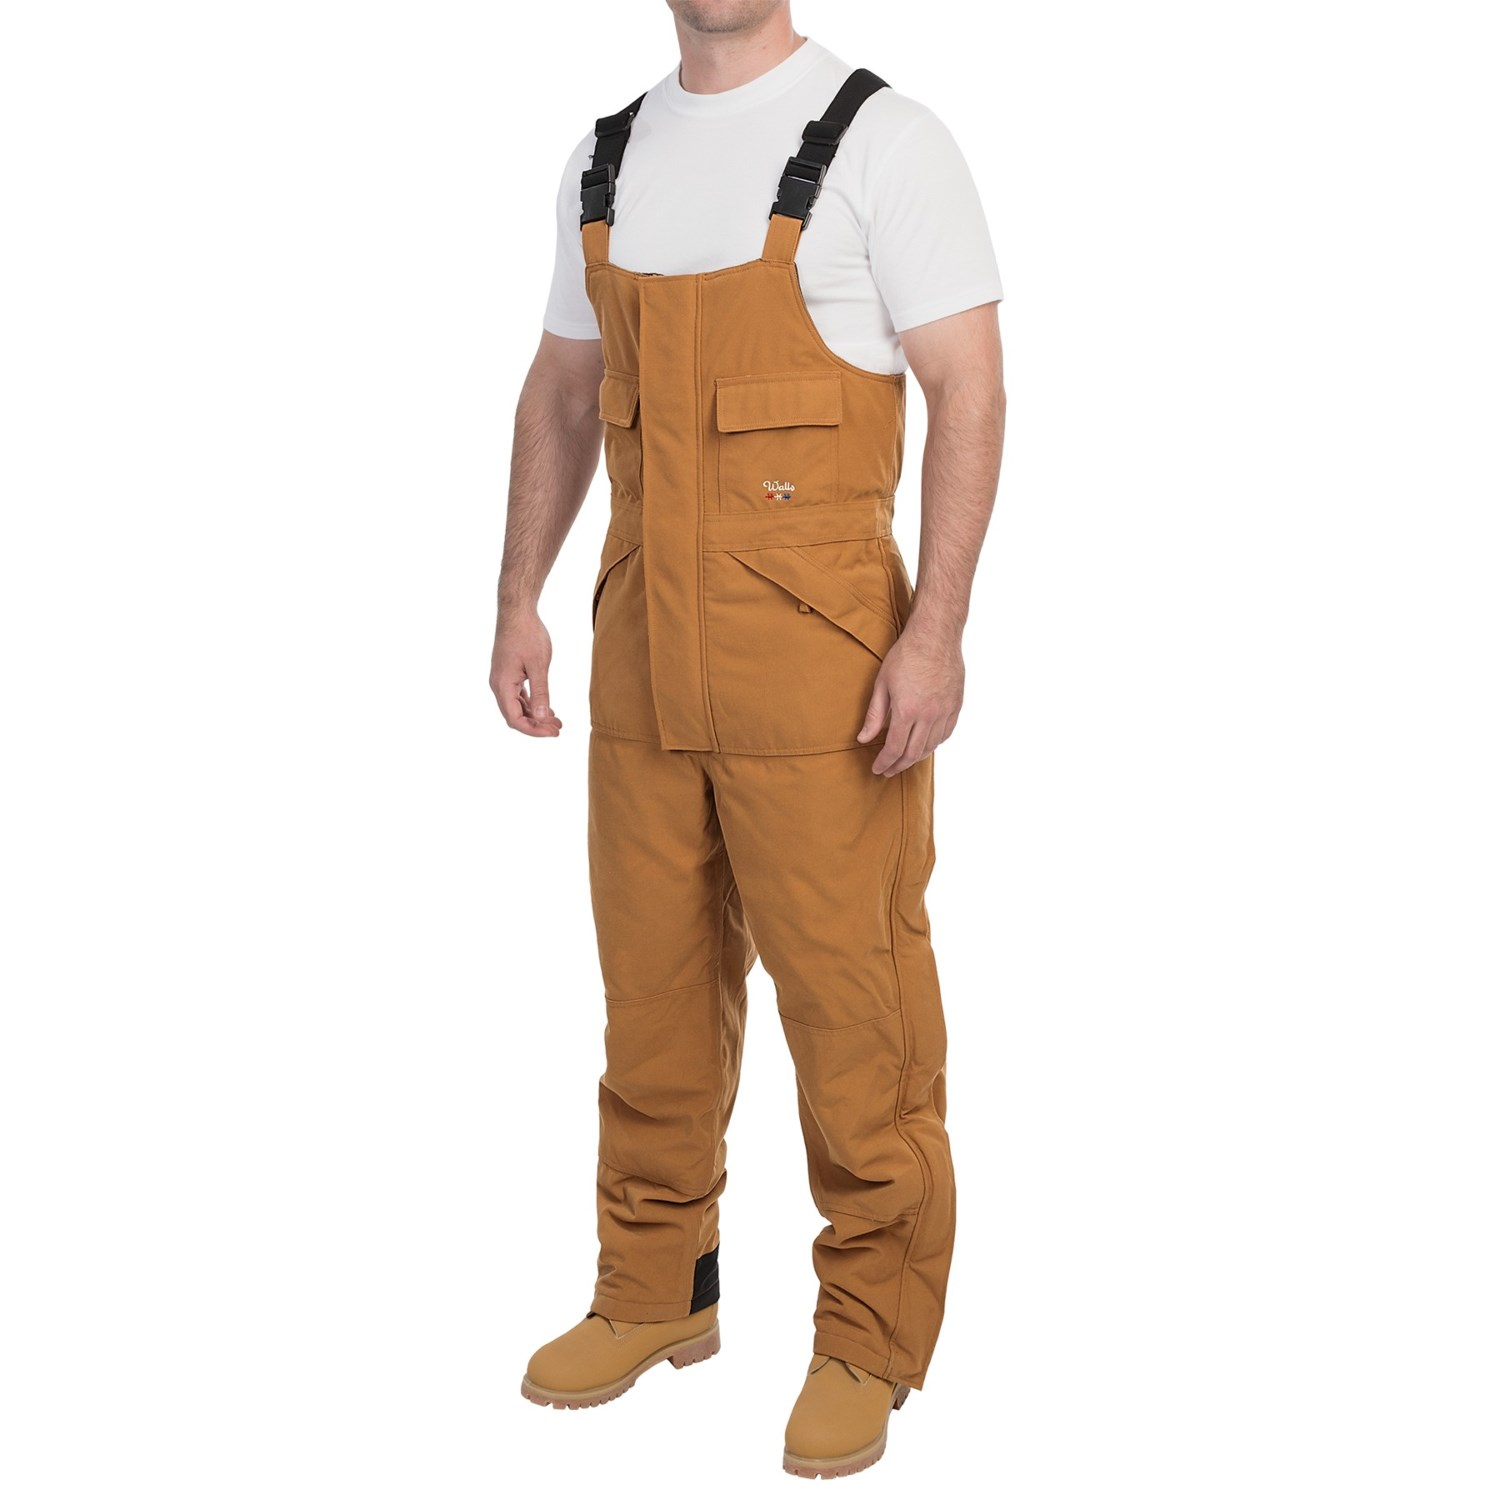 Guys in Bib Overalls Bib Overalls Waterproof